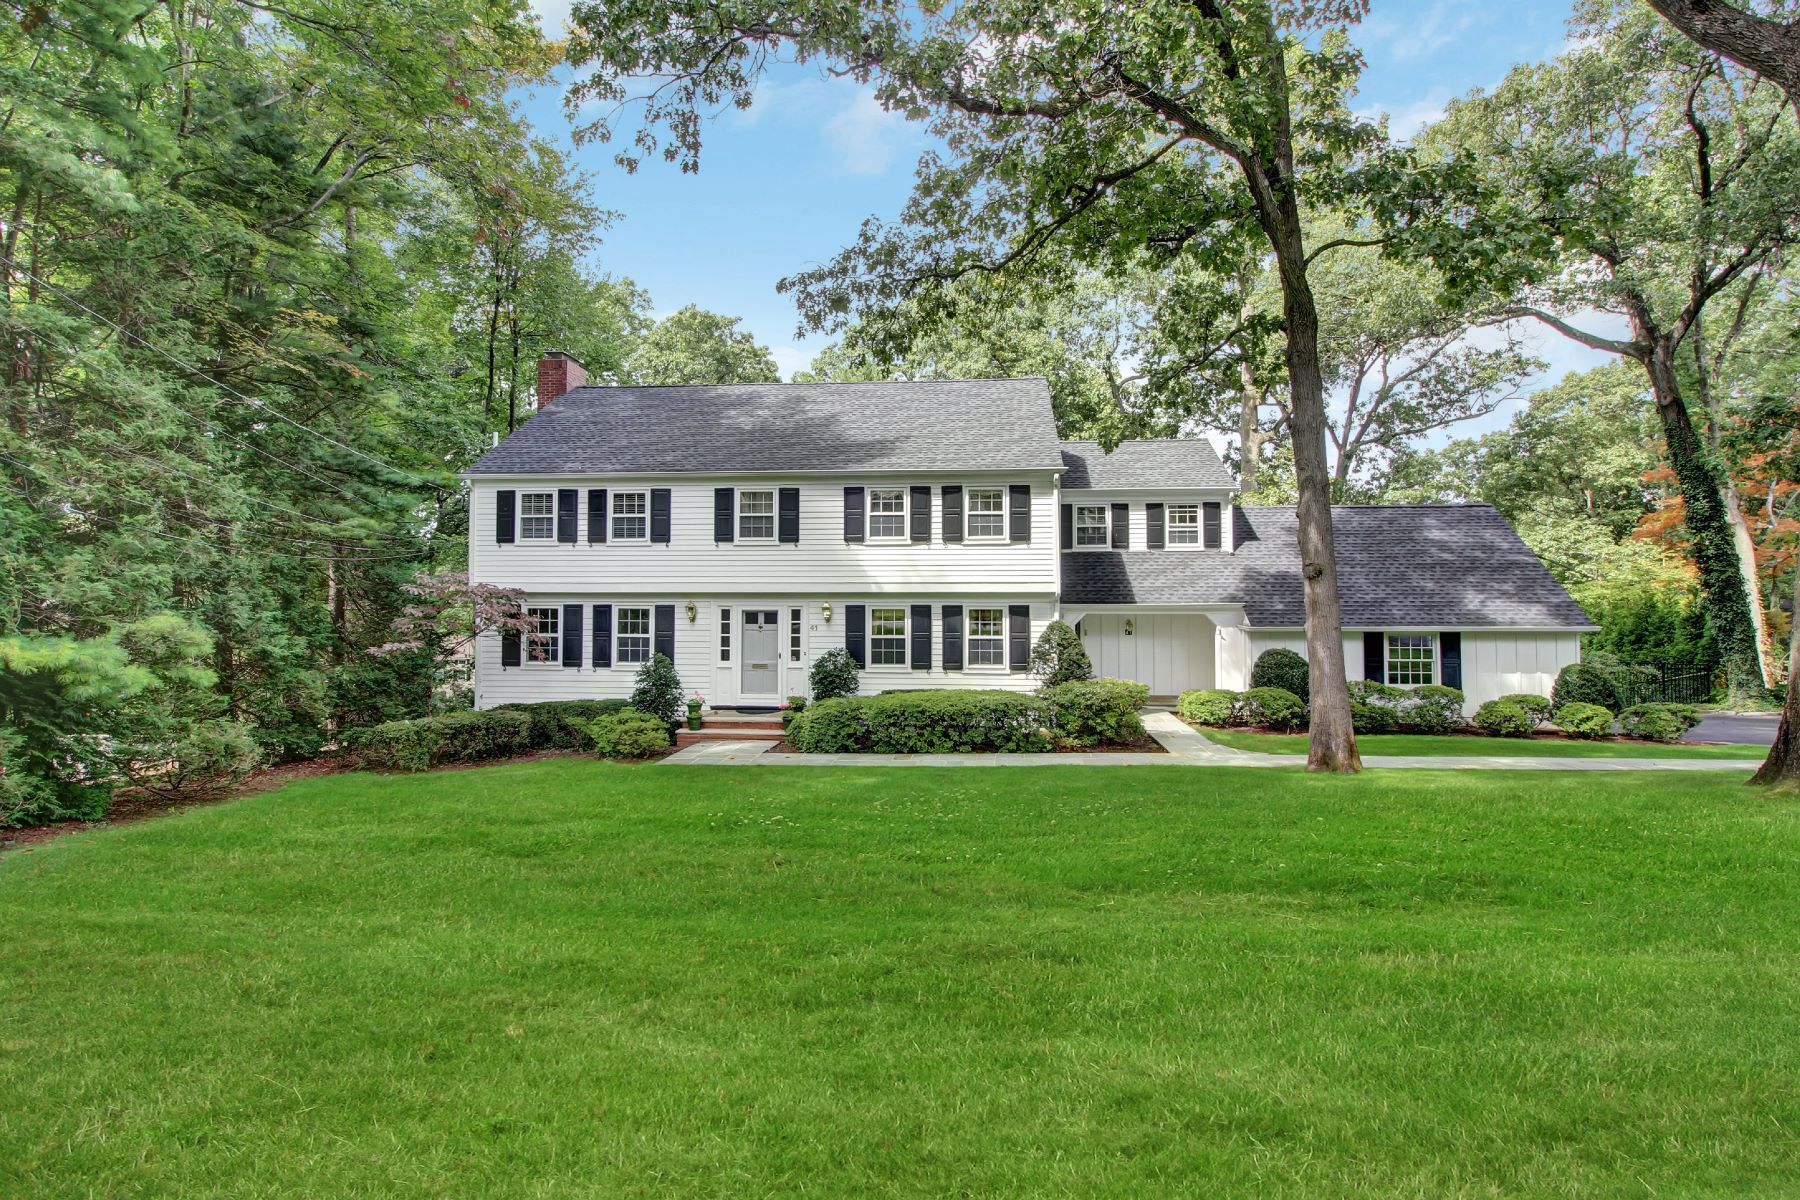 Single Family Home for Sale at Classic Colonial 41 Greenbriar Drive, Summit, New Jersey 07901 United States